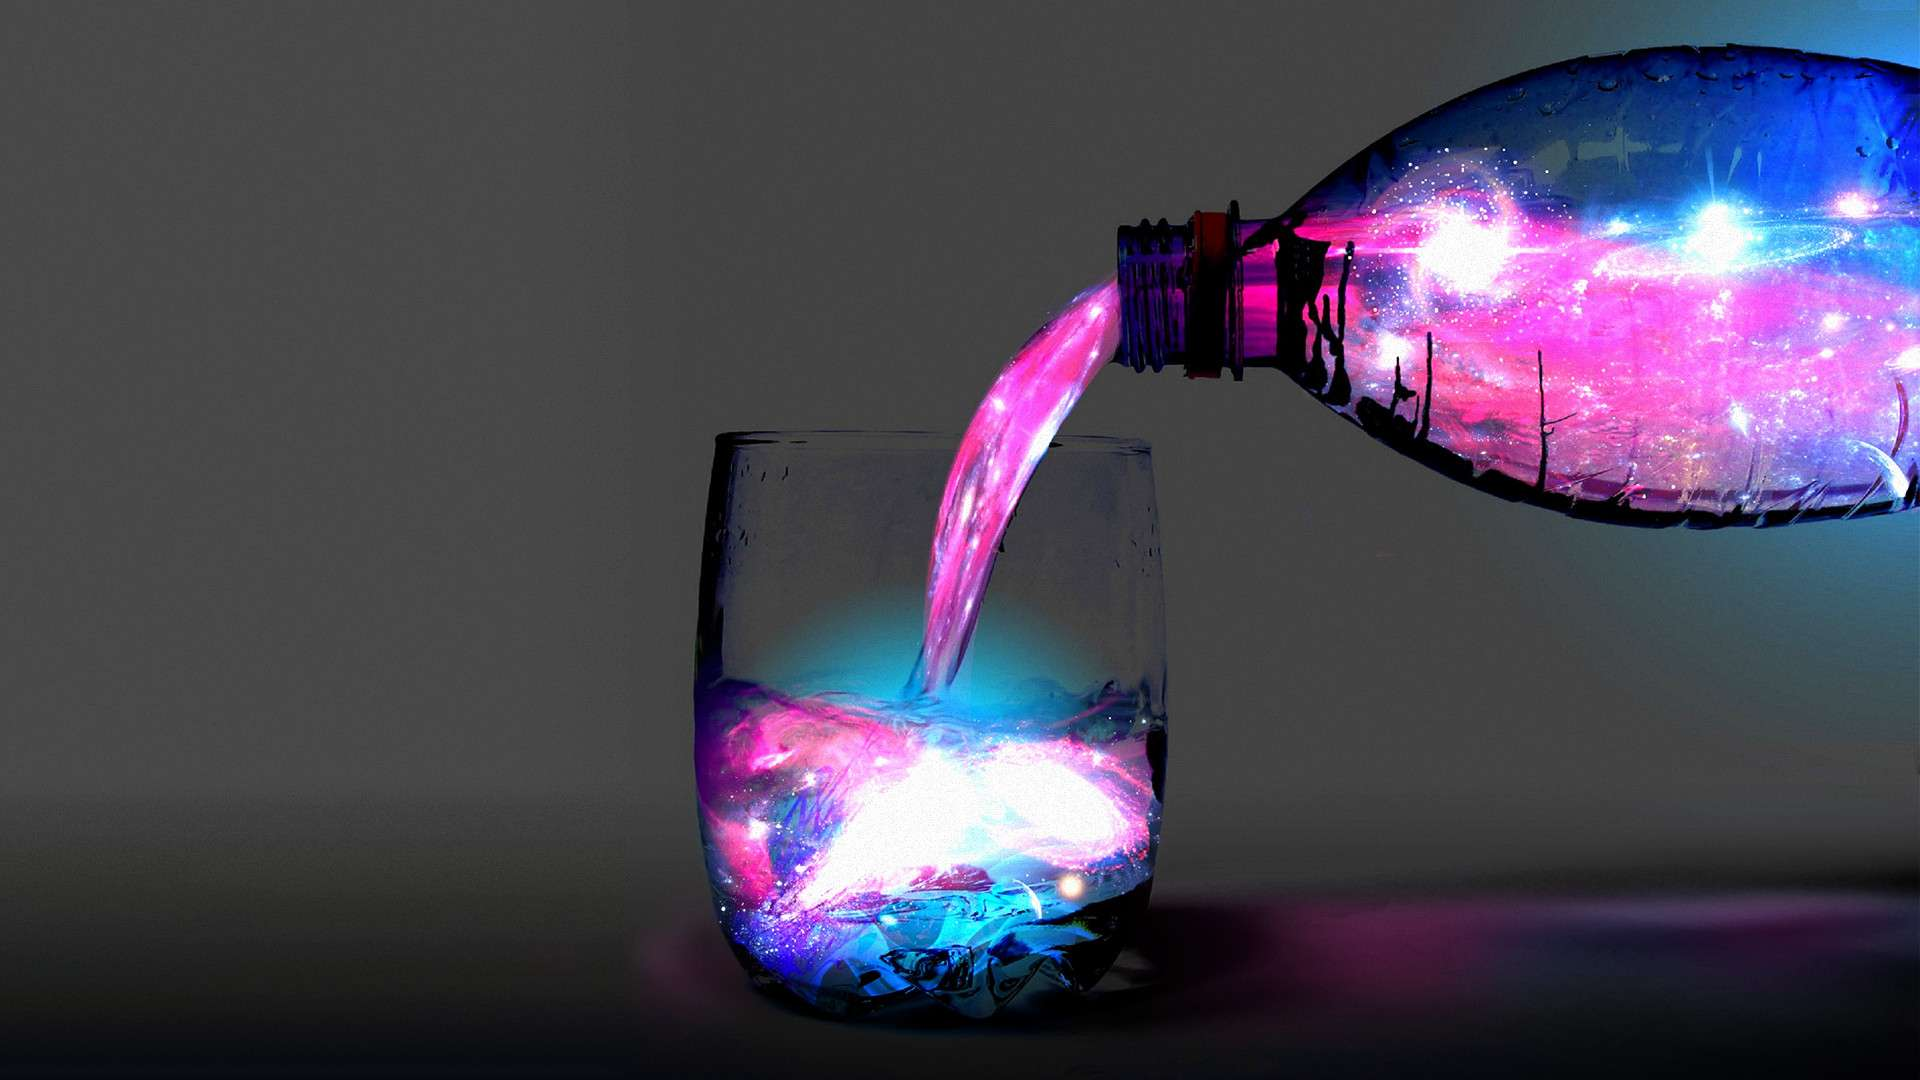 Magic Colorful Liquid  183.03 Kb